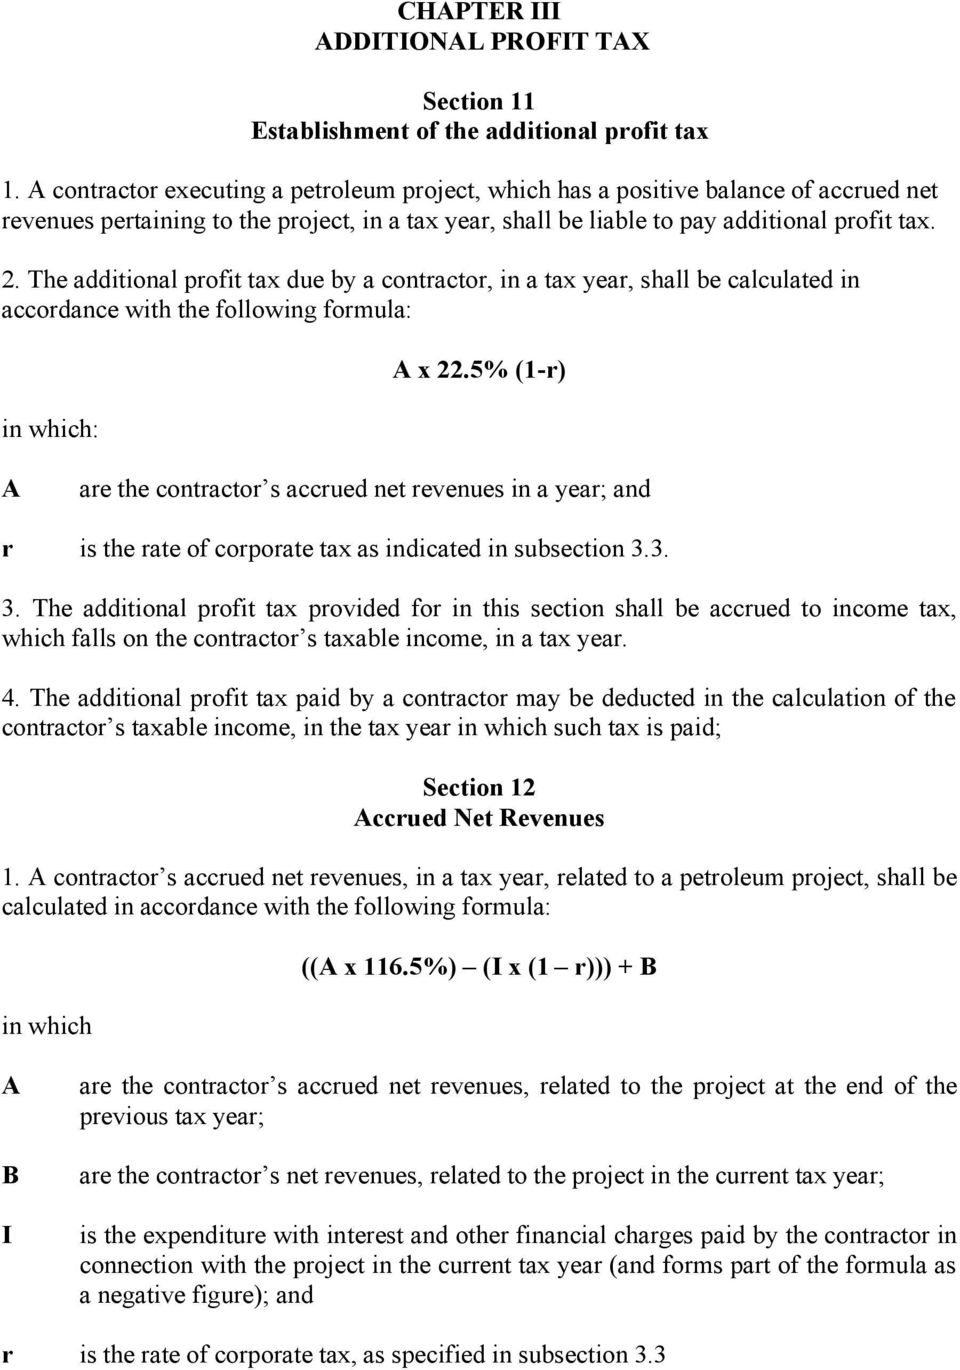 The additional profit tax due by a contractor, in a tax year, shall be calculated in accordance with the following formula: in which: A x 22.